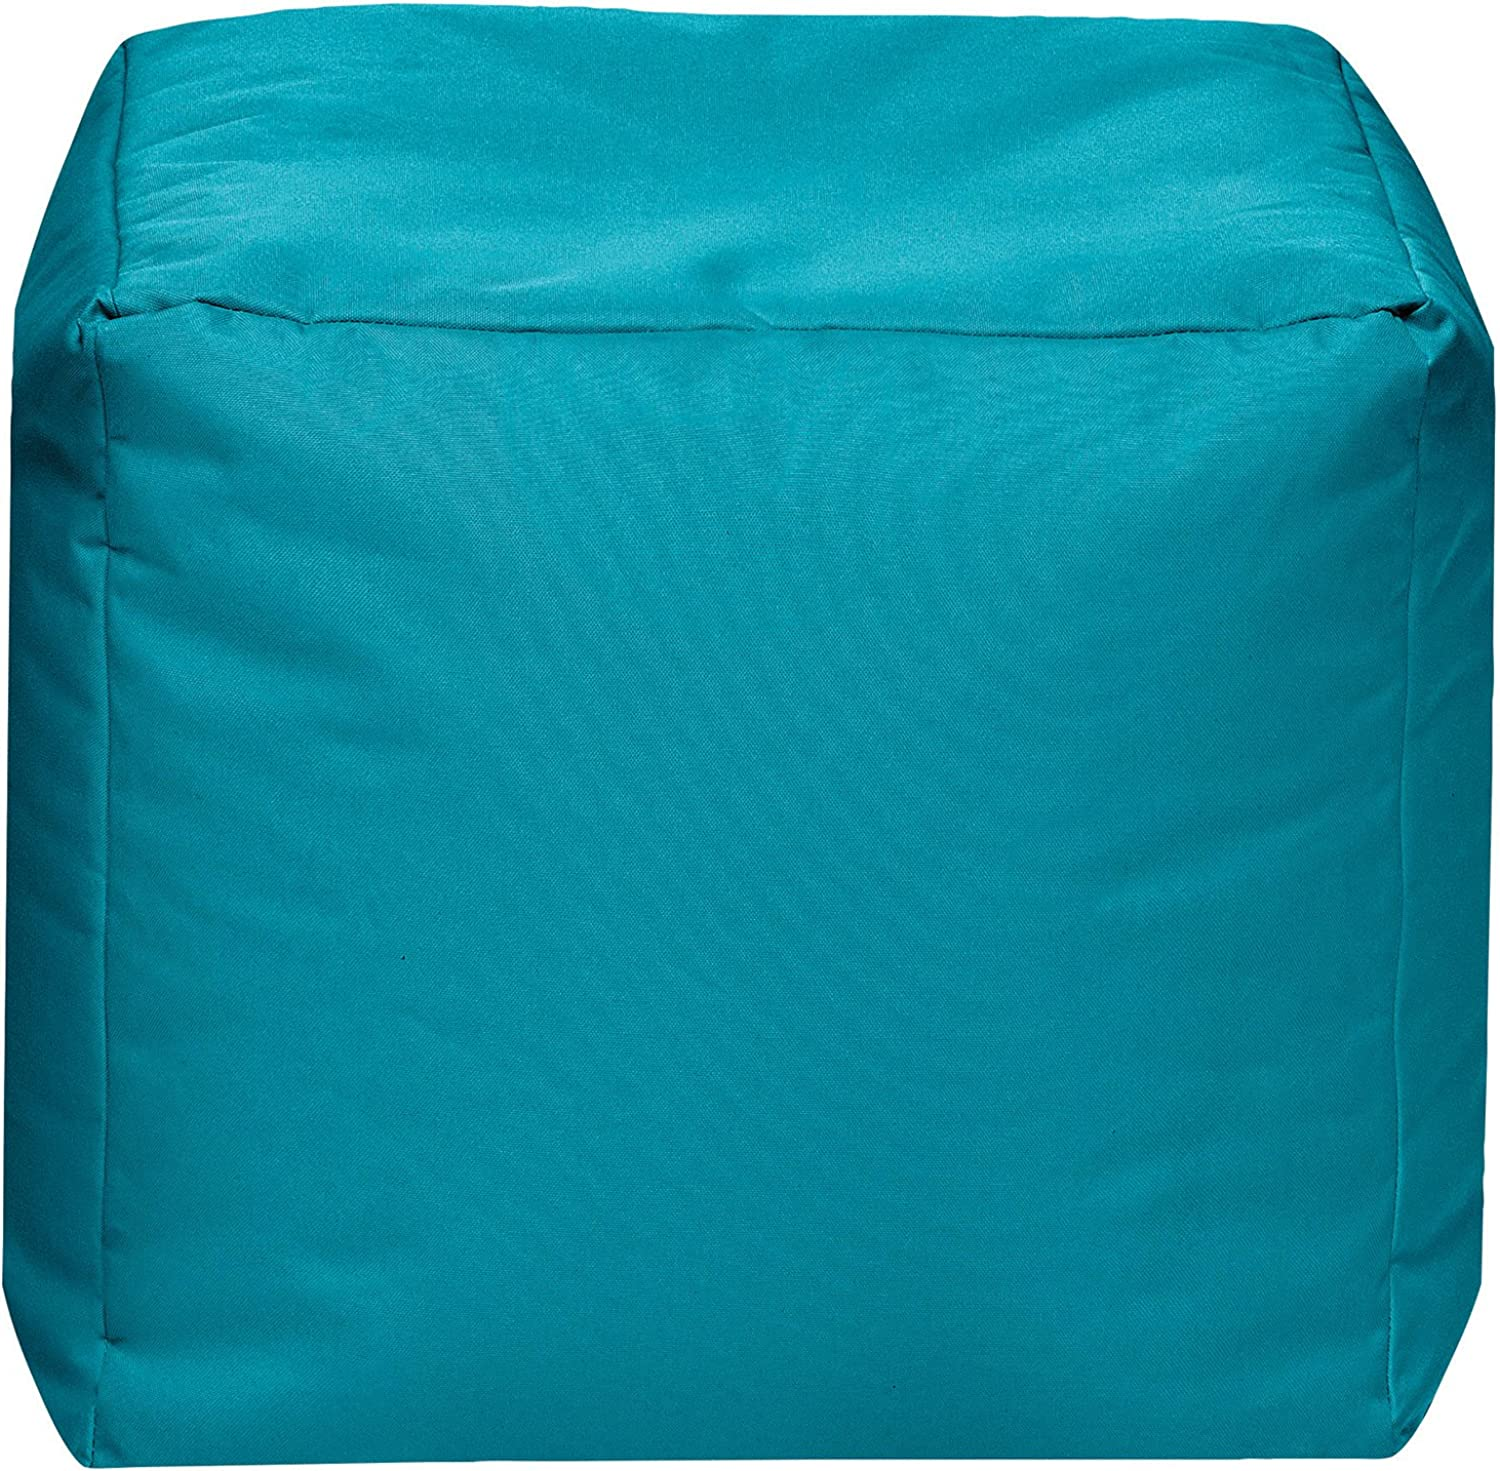 Sitting Point Cube Brava Contemporary Bean Bag Chair (Turquoise)